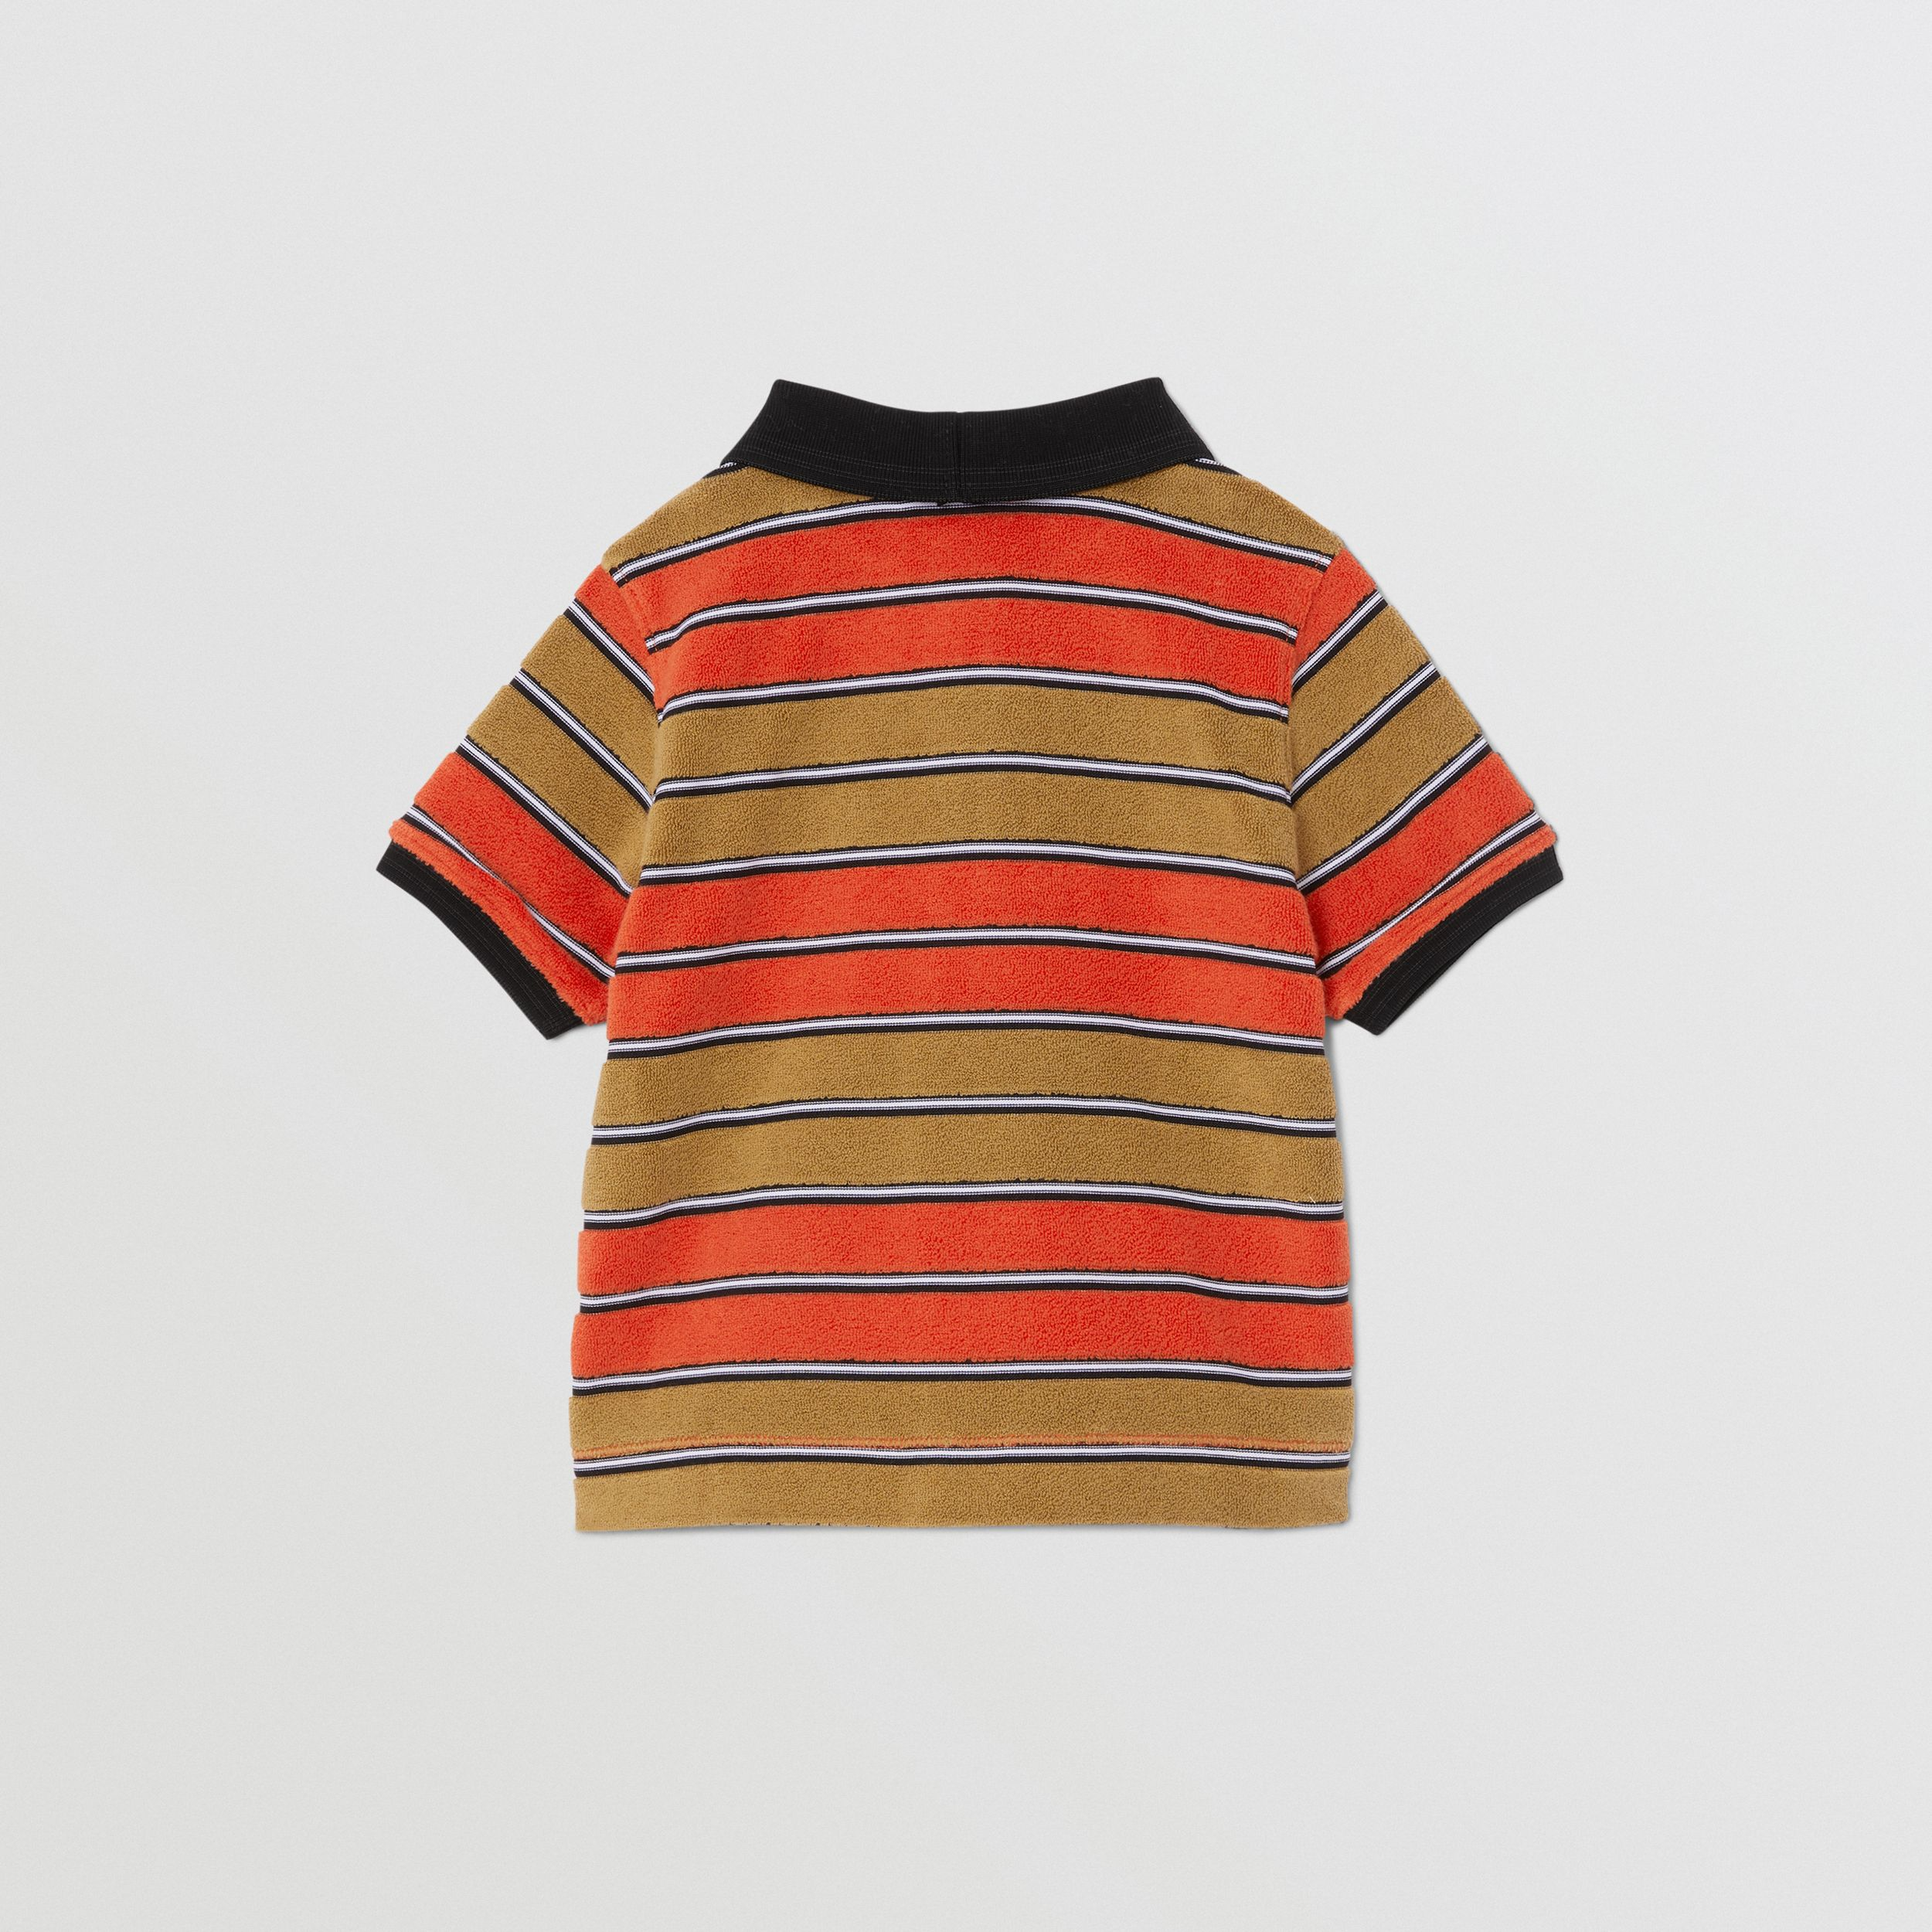 Logo Appliqué Striped Towelling Polo Shirt in Vermilion Red - Children | Burberry Canada - 4